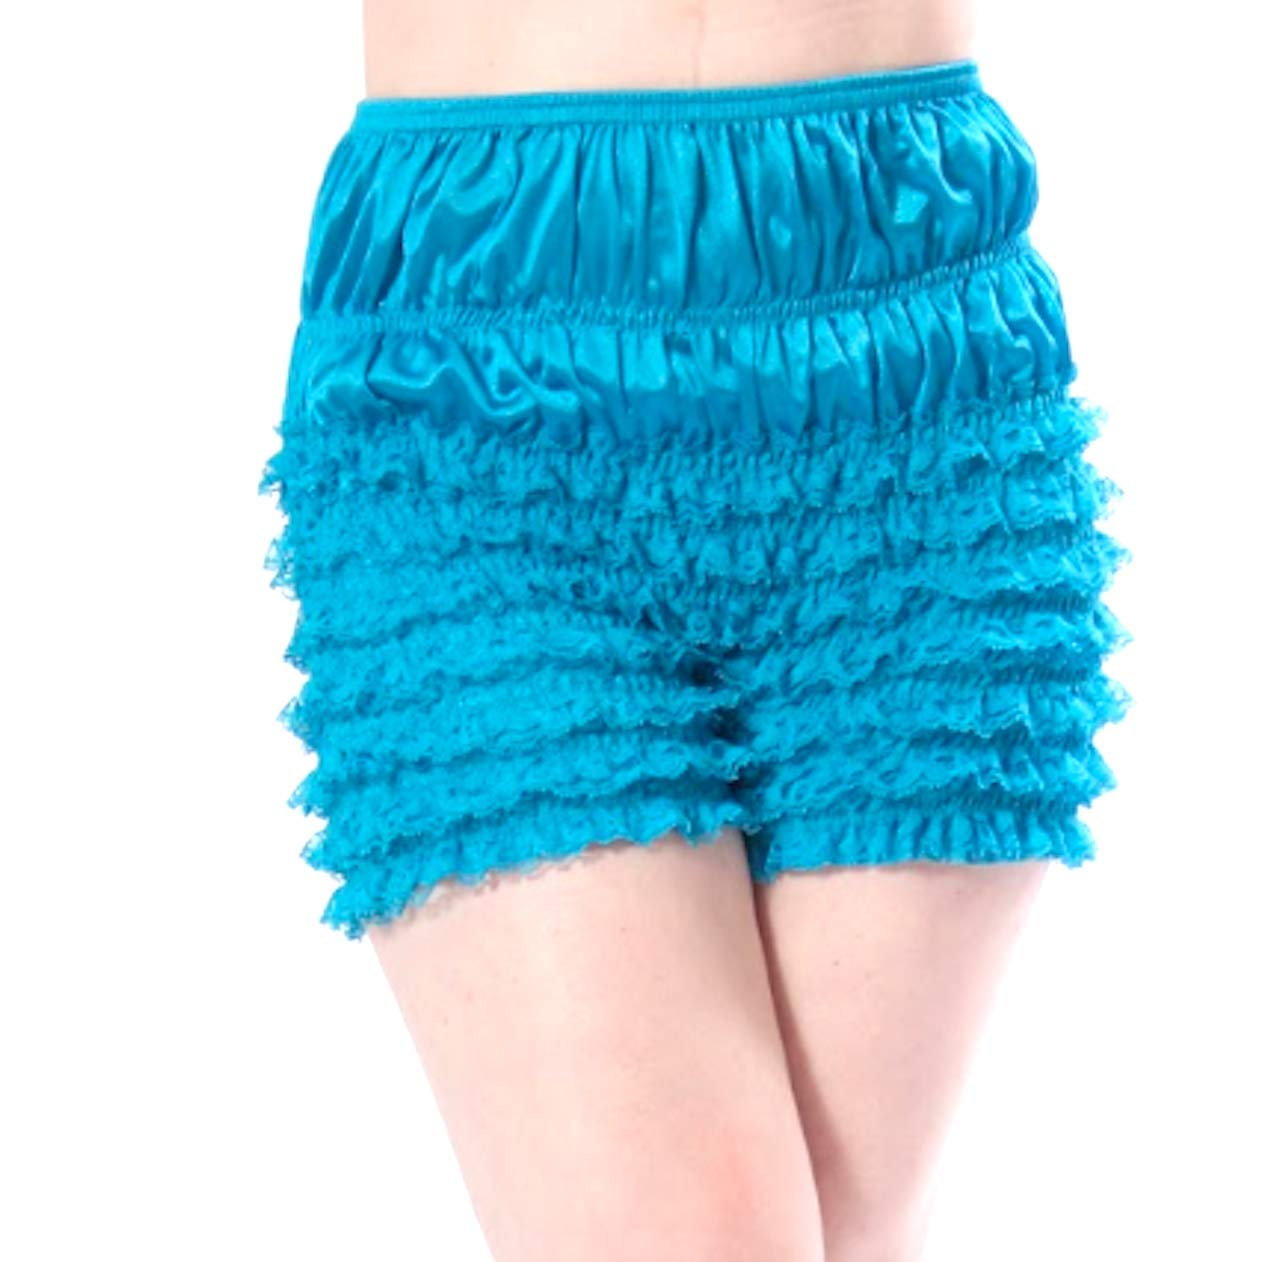 Malco Modes Womens Sexy Ruffle Panties Tanga Dance Bloomers Sissy Booty Shorts (Large, Turquoise) by Malco Modes